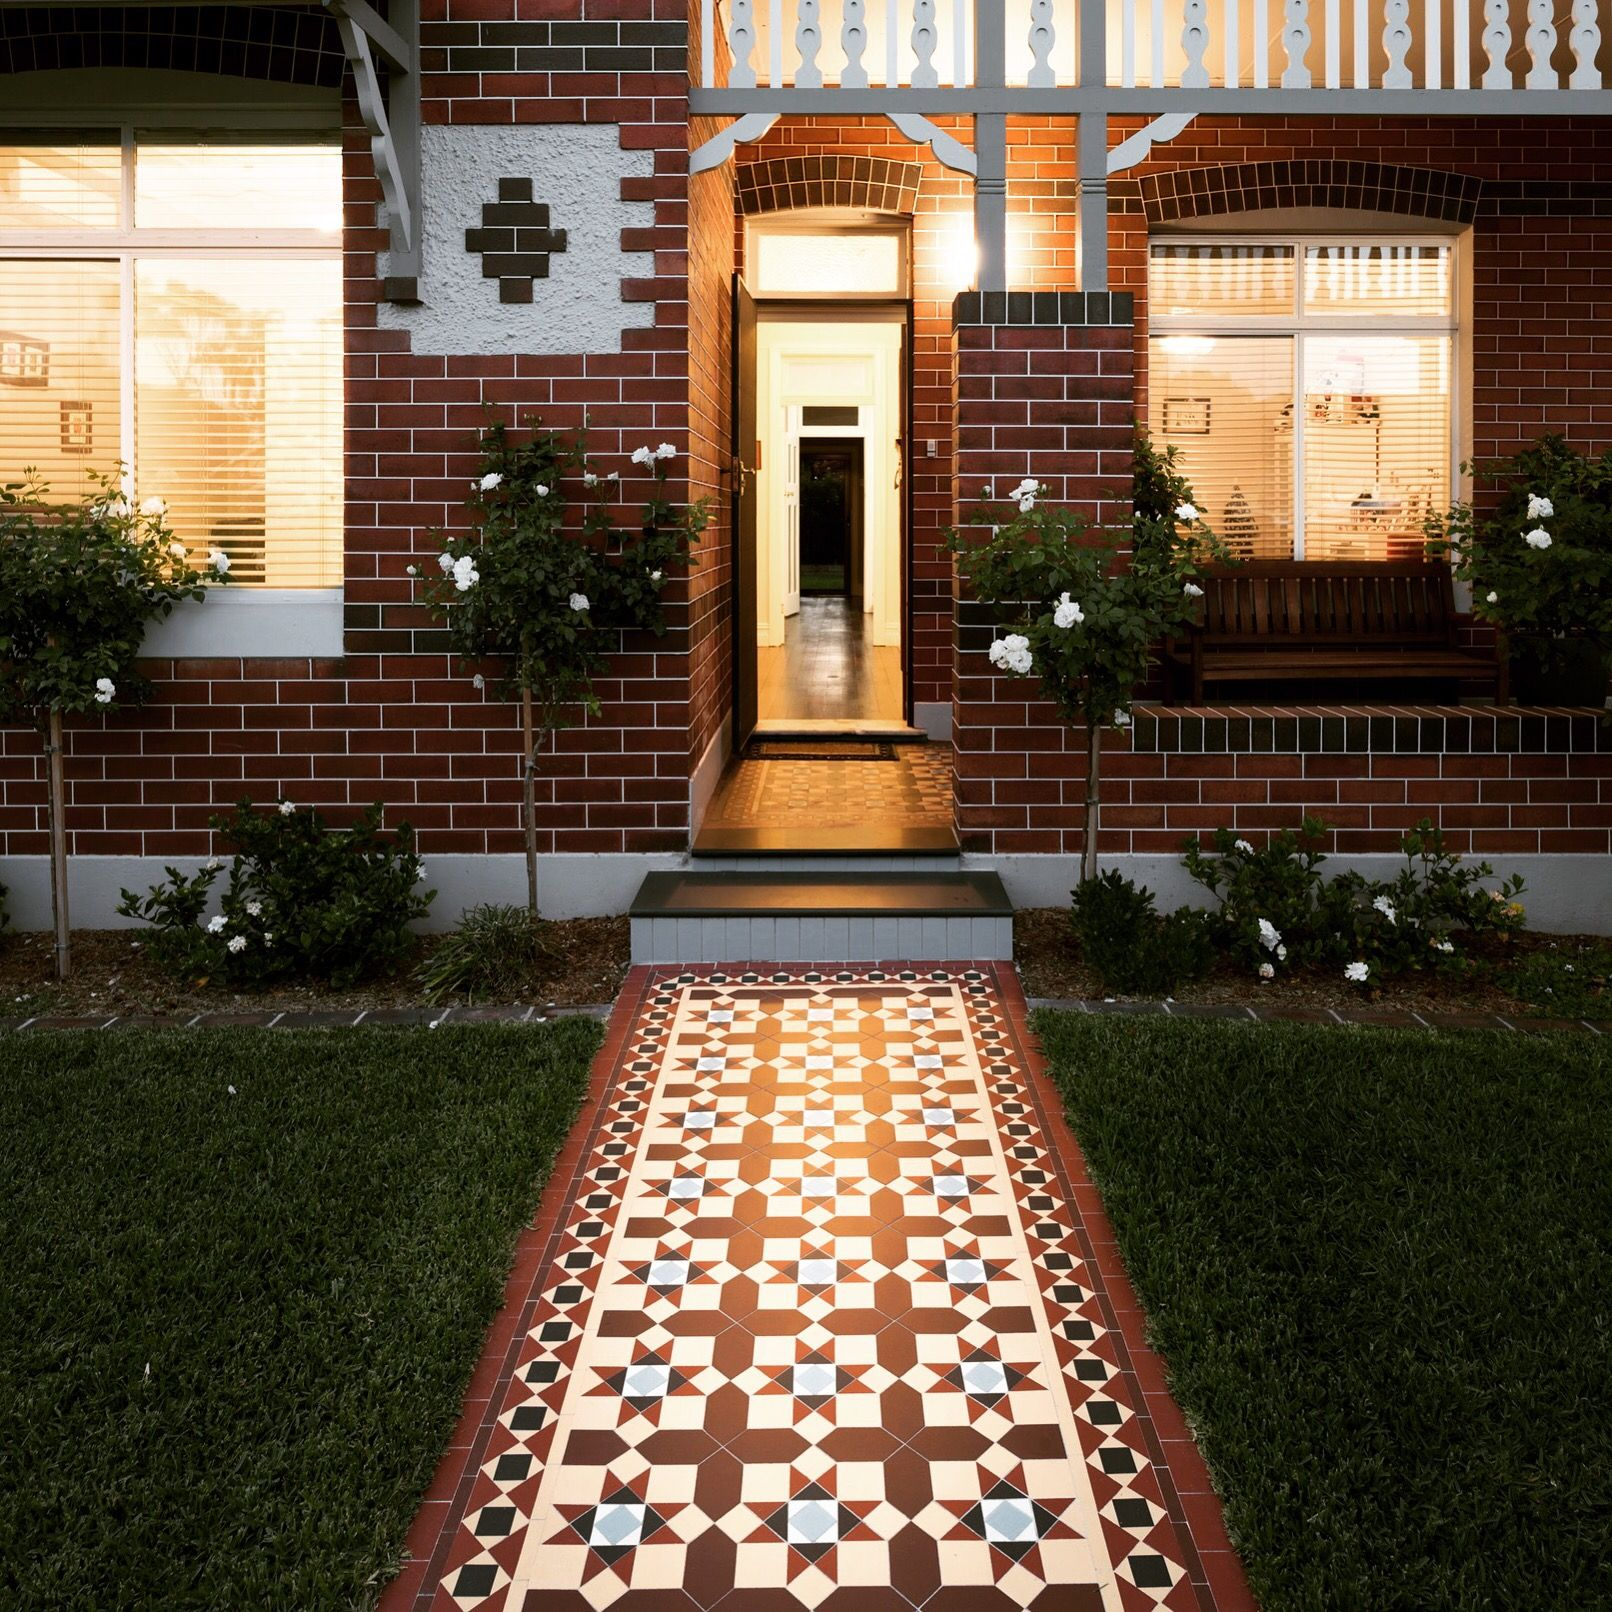 An elegant entrance to a perfectly preserved federation home a warm an elegant entrance to a perfectly preserved federation home a warm palette highlights the traditional dailygadgetfo Images